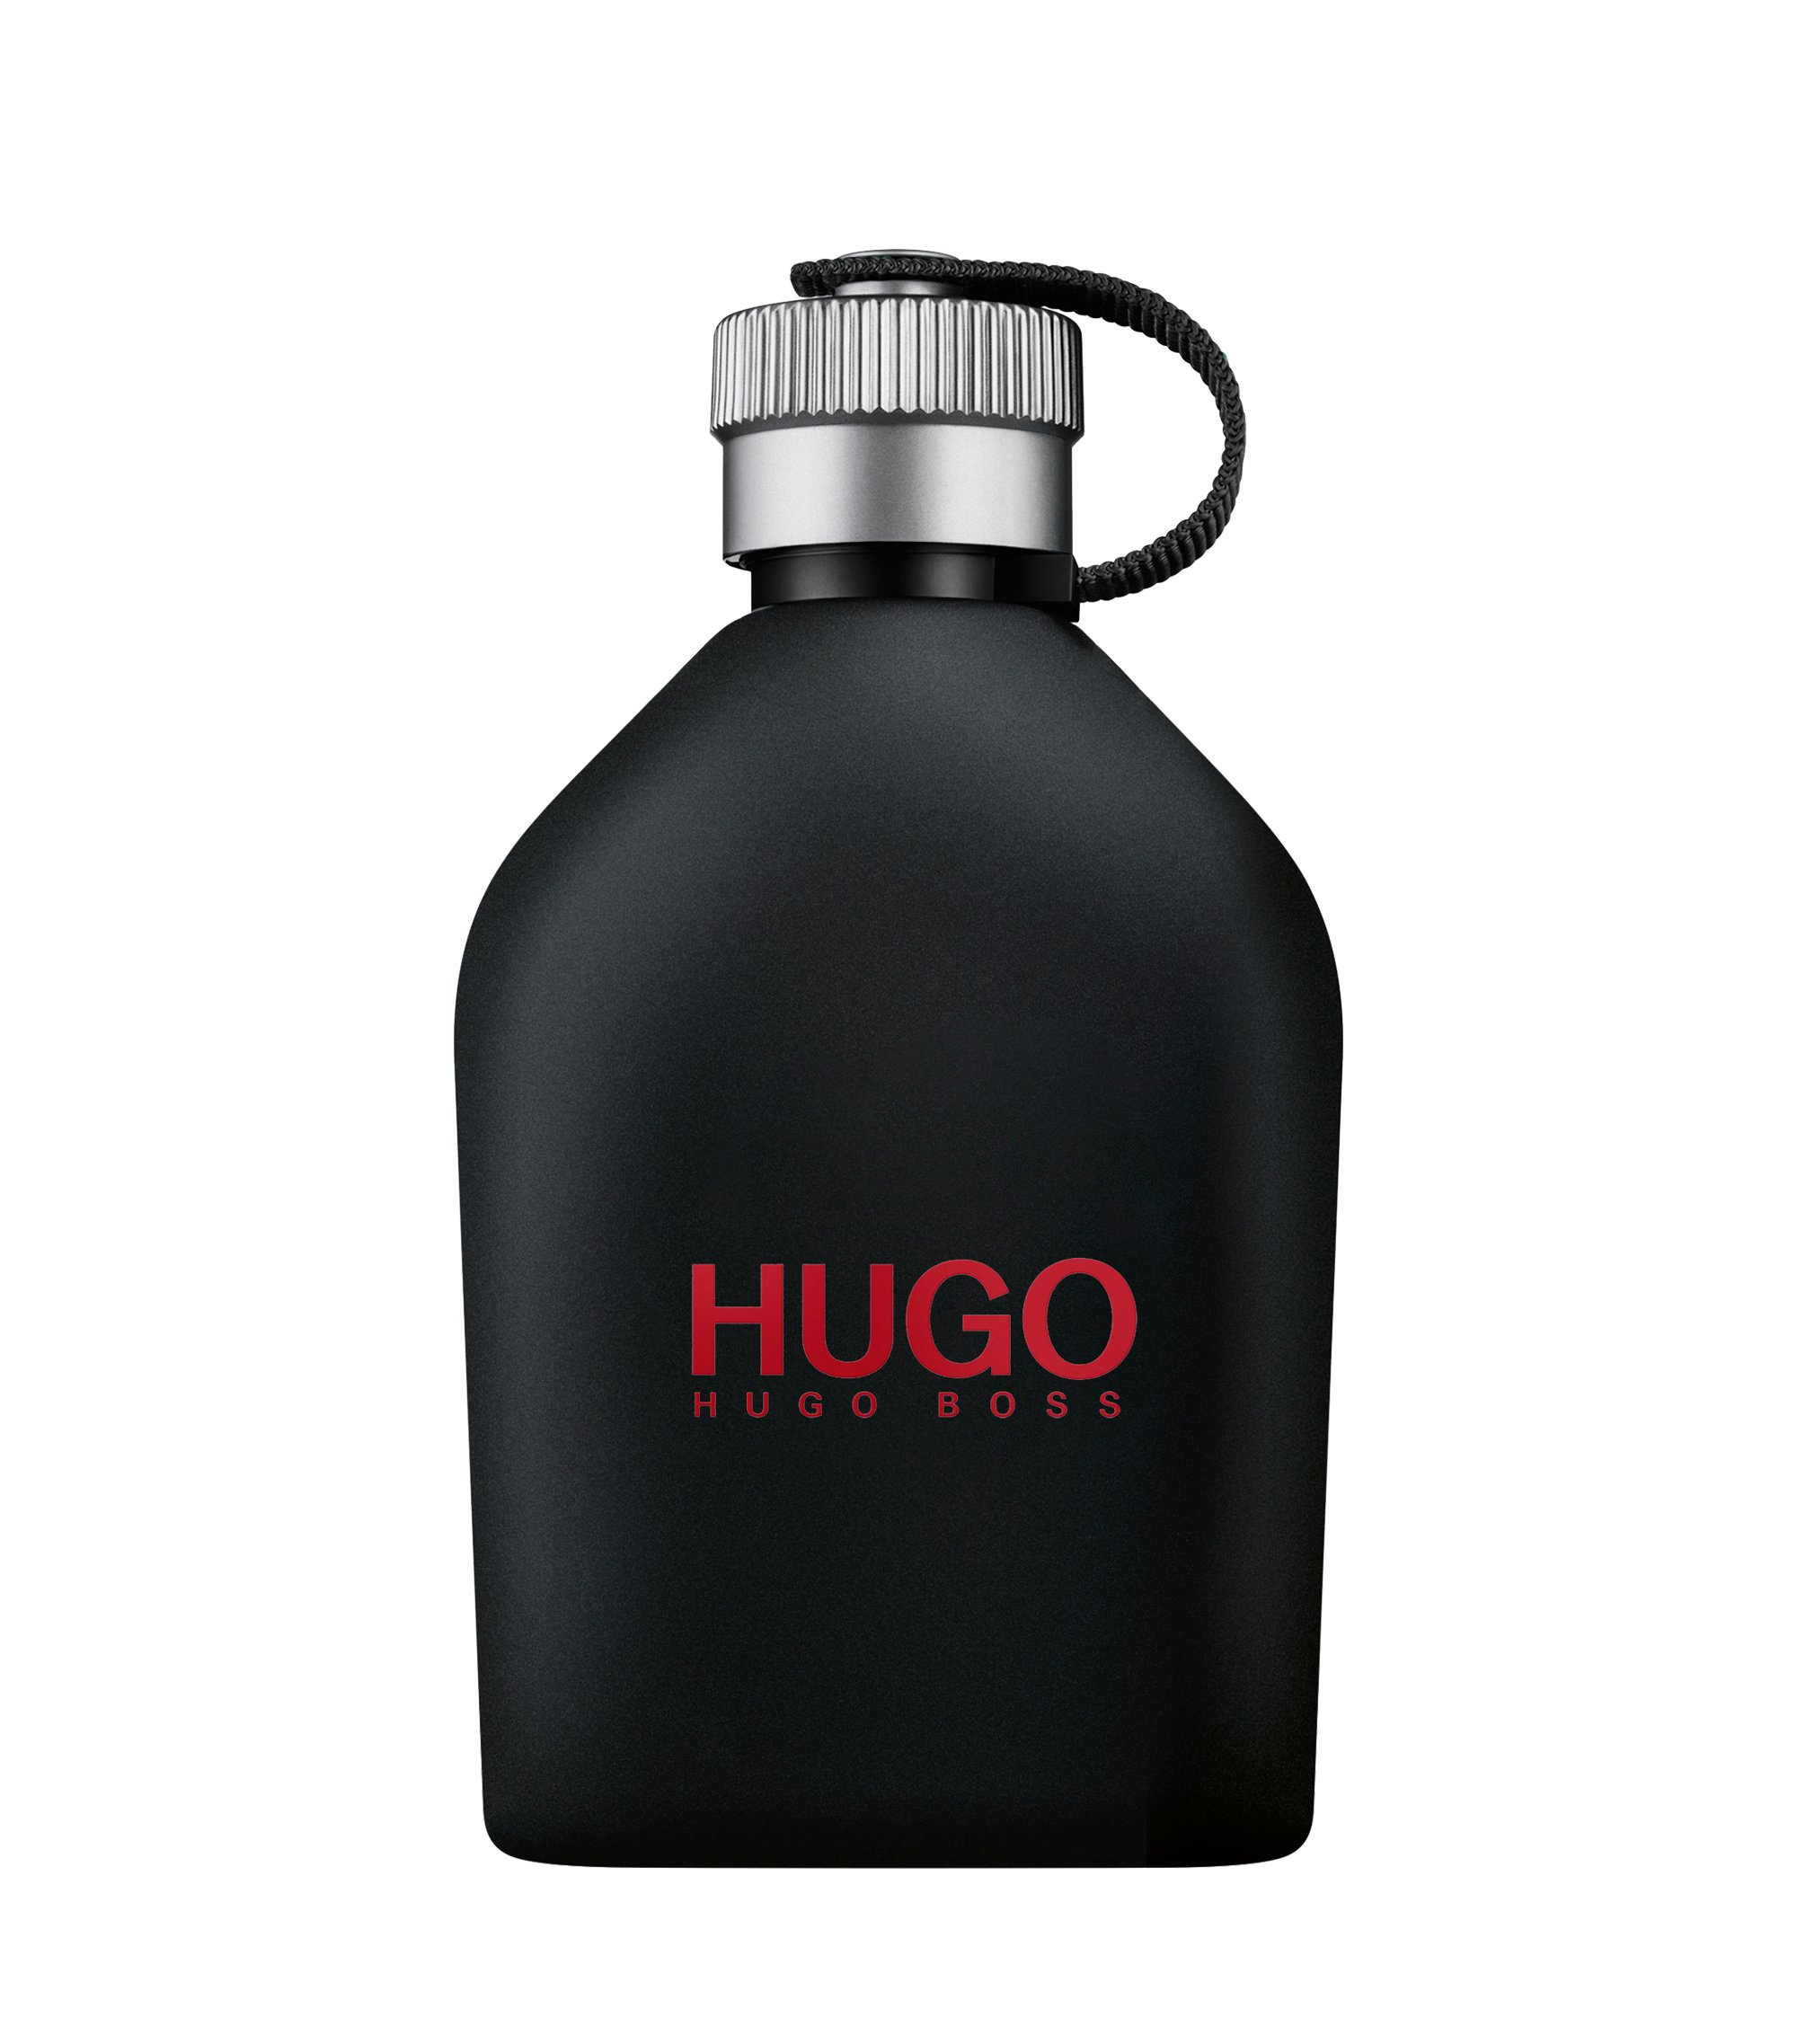 HUGO Just Different eau de toilette 200ml, Assorted-Pre-Pack